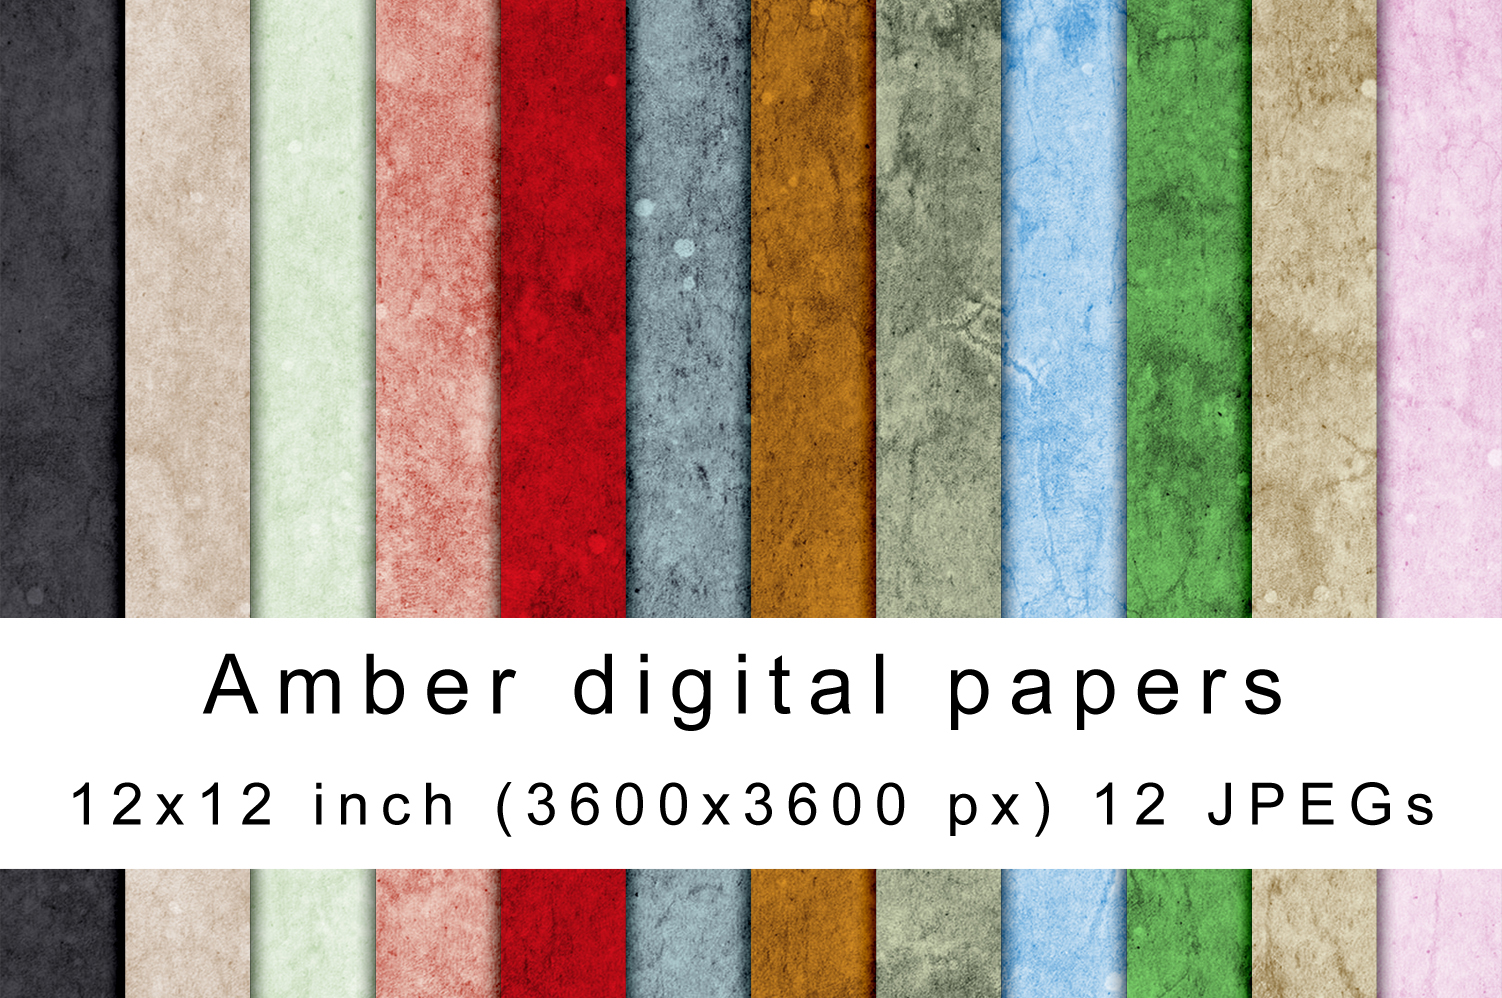 Download Free Amber Digital Papers Graphic By Andrea Kostelic Creative Fabrica for Cricut Explore, Silhouette and other cutting machines.